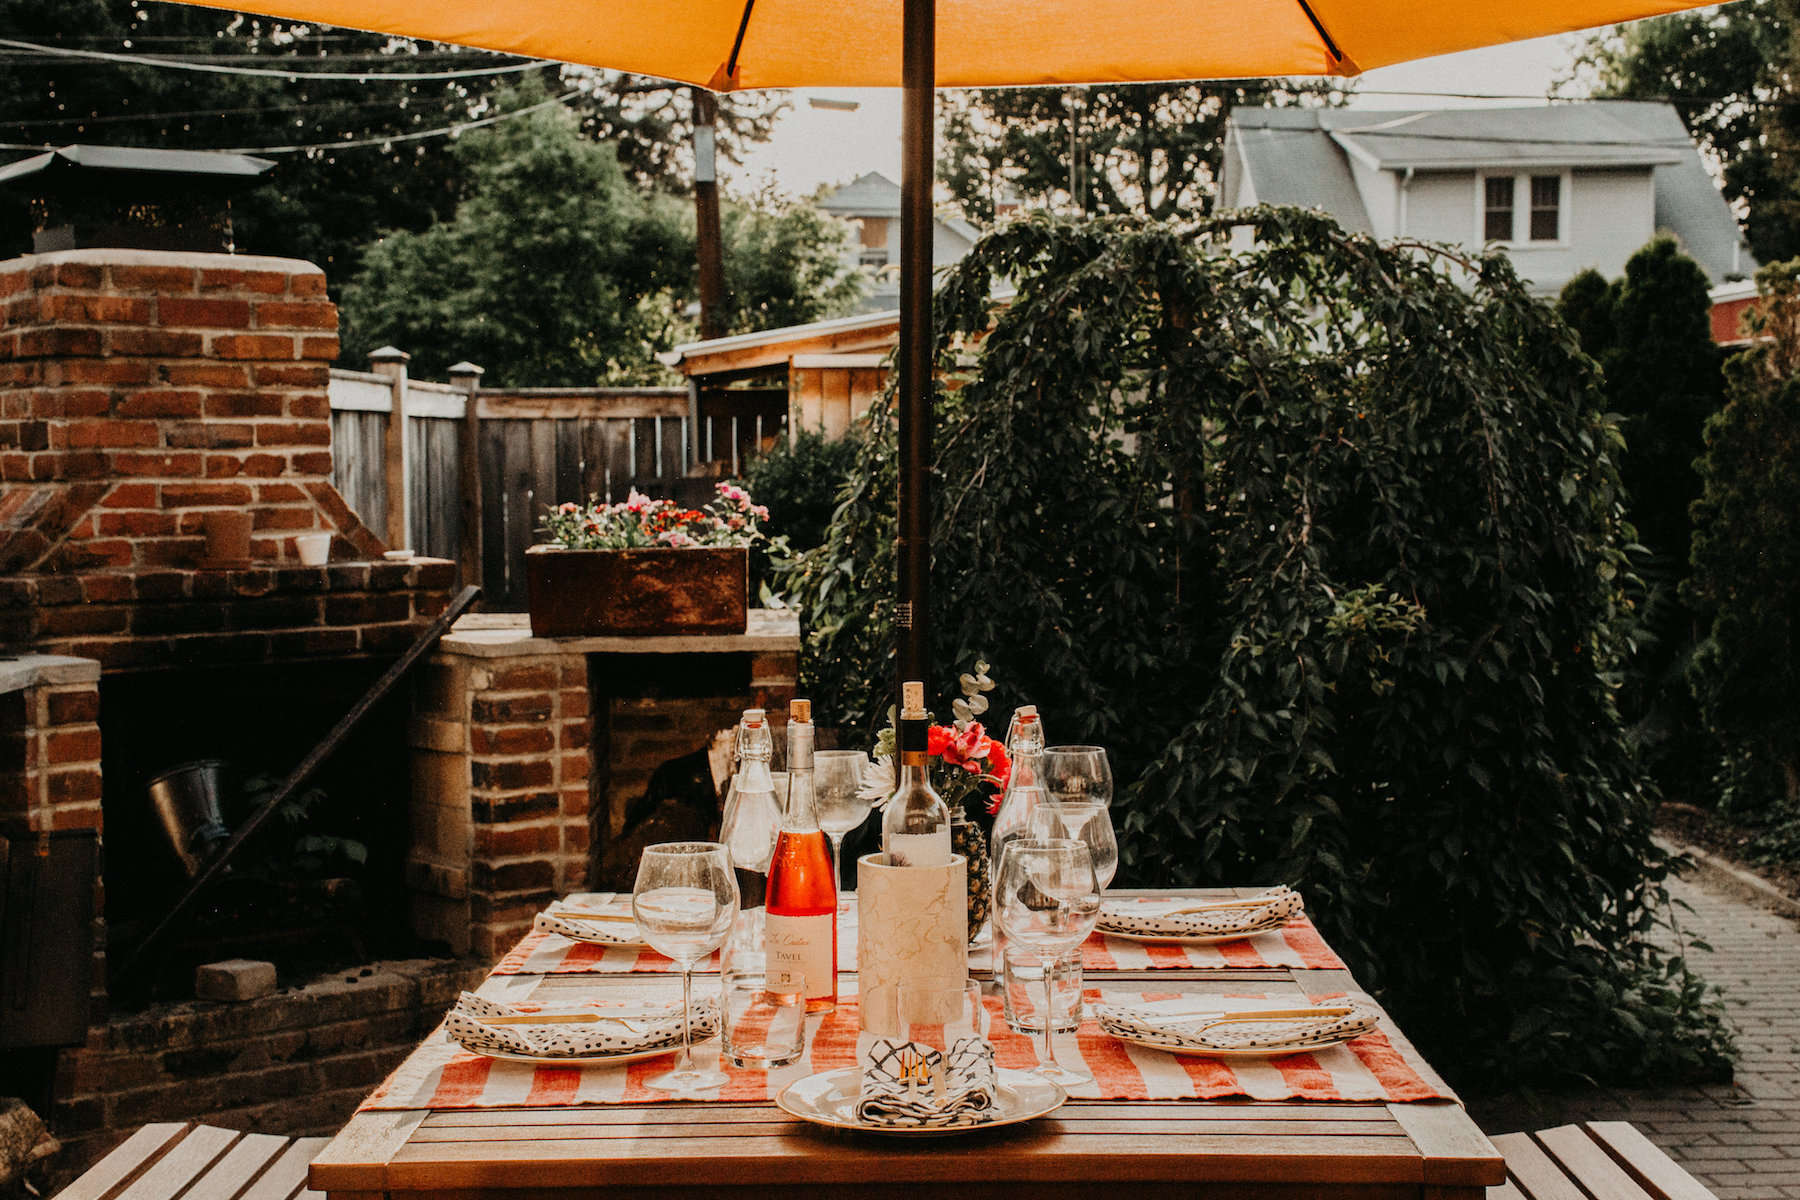 Backyard Summer Patio Party Table Set Up | BySarahRae.com